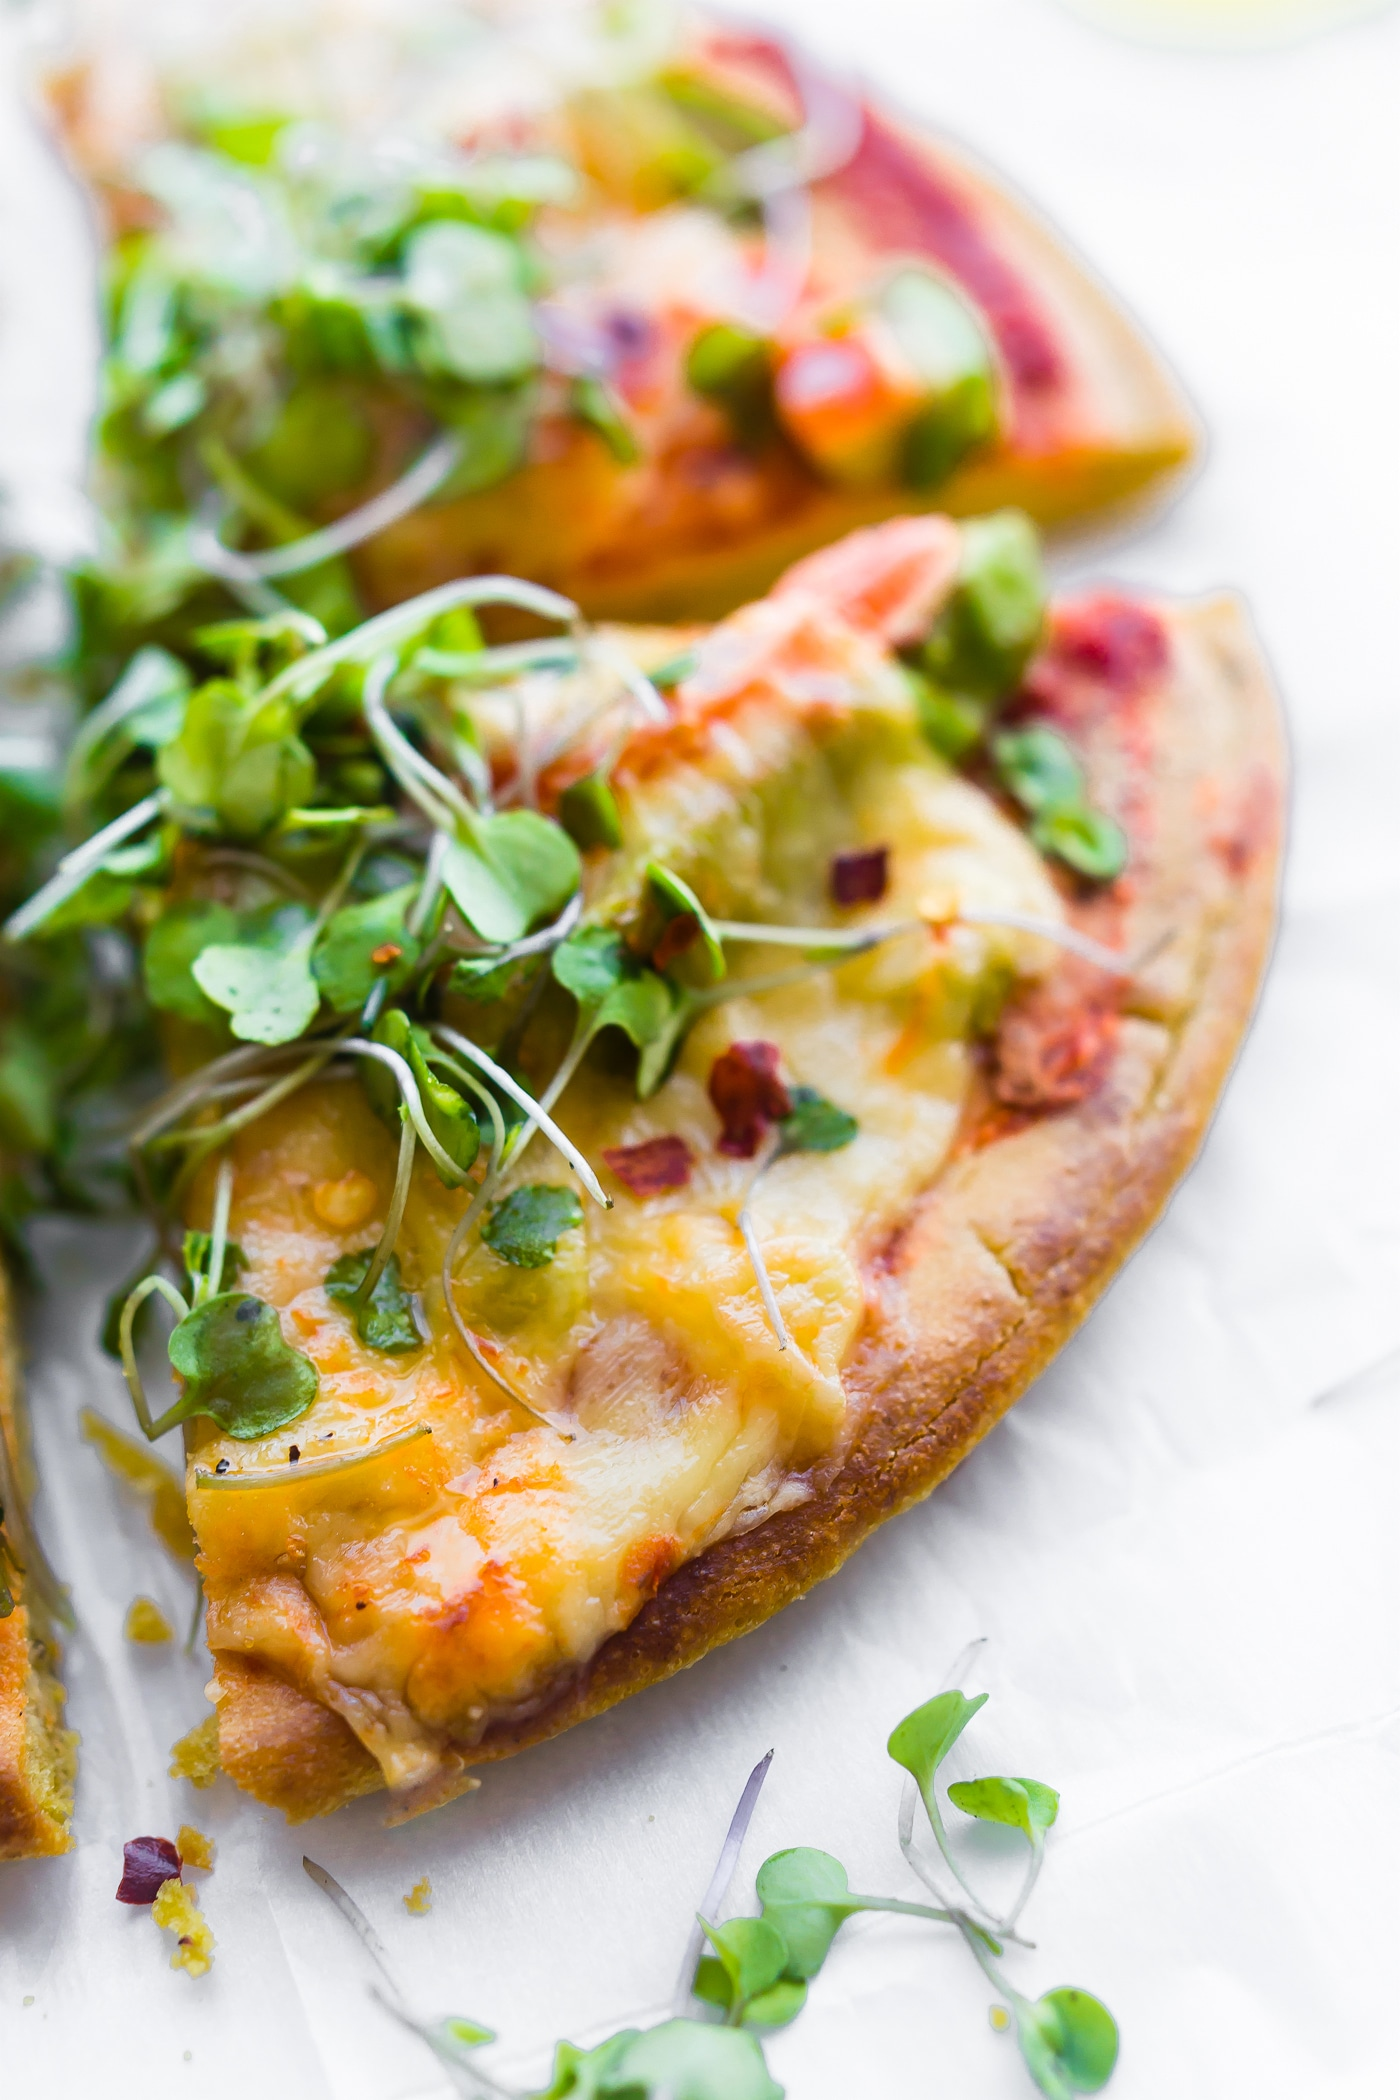 Avocado Tomato Gouda Socca Pizza recipe to love! Agrain free, gluten free Avocado Tomato Gouda Socca Pizza made withchickpea flour and topped with Avocado, Gouda, Tomato, and Greens! Seriously easy to make, egg free, vegan option, OMG delicious!